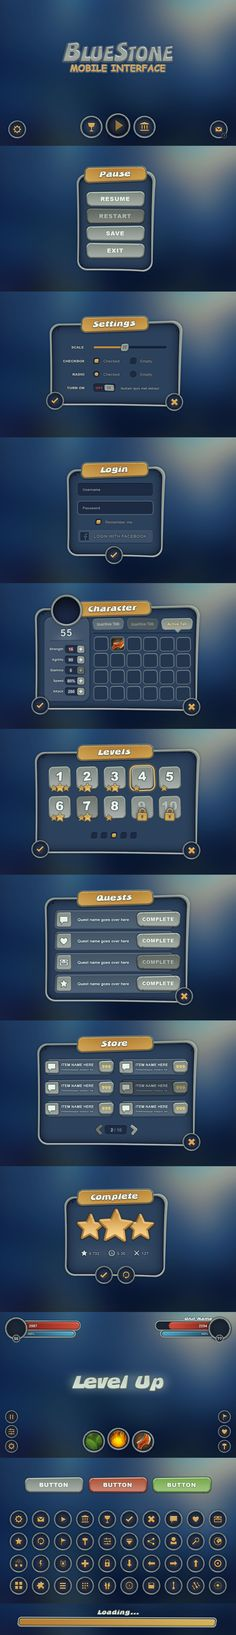 Designed for the needs of mobile game developers, this interface is vector and all the elements can me scaled up, depending on the developers needs. Game Interface, User Interface Design, Ui Ux Design, Game Design, Graphic Design, Game Gui, Game Icon, Mobile Game, Mobile Ui